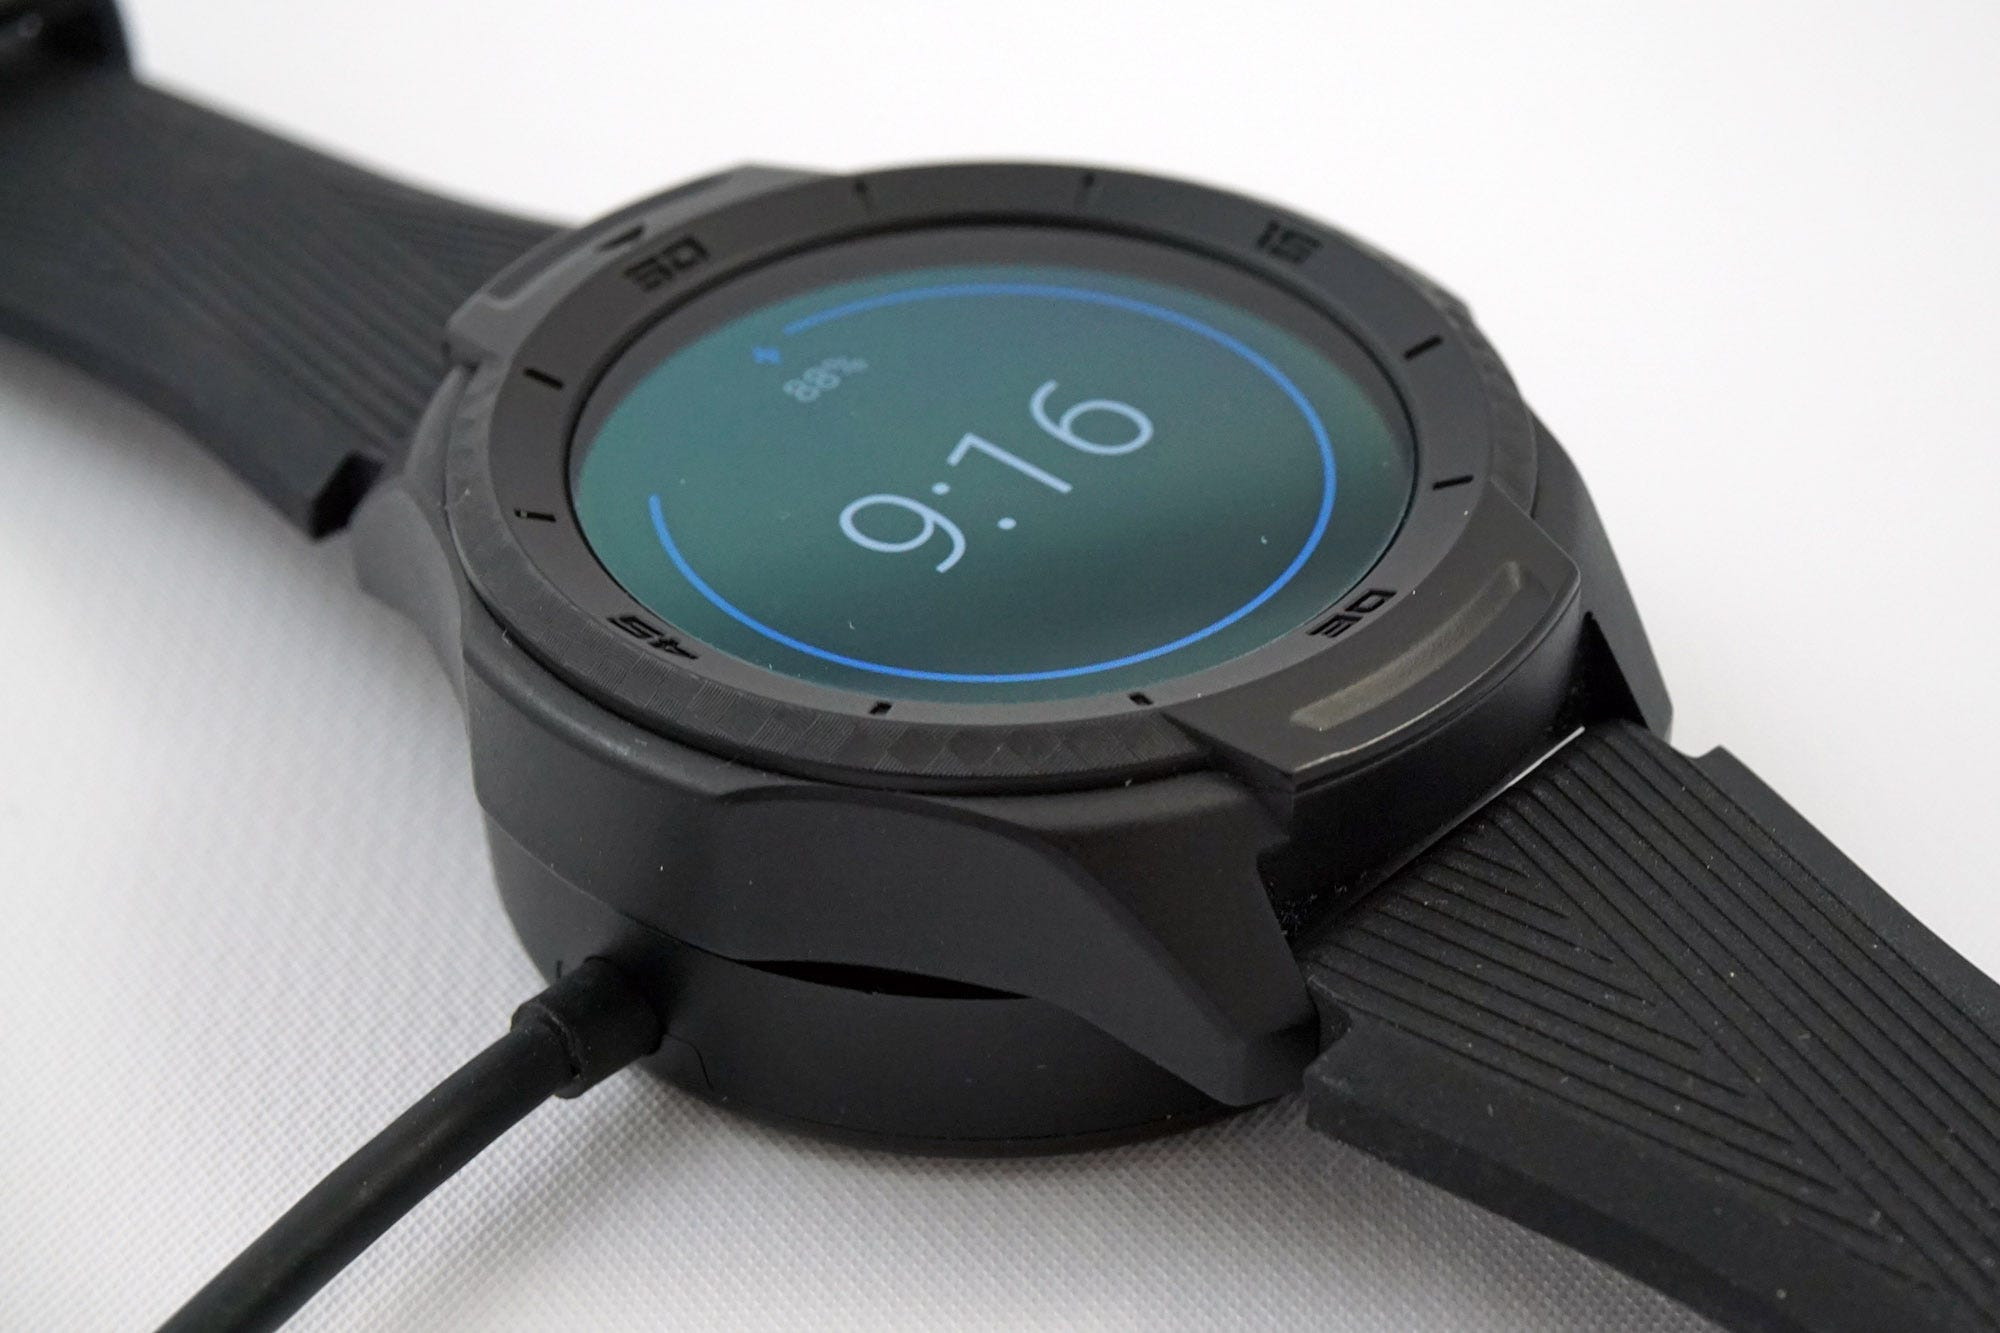 The watch recharges quickly on the included, but proprietary, charger.